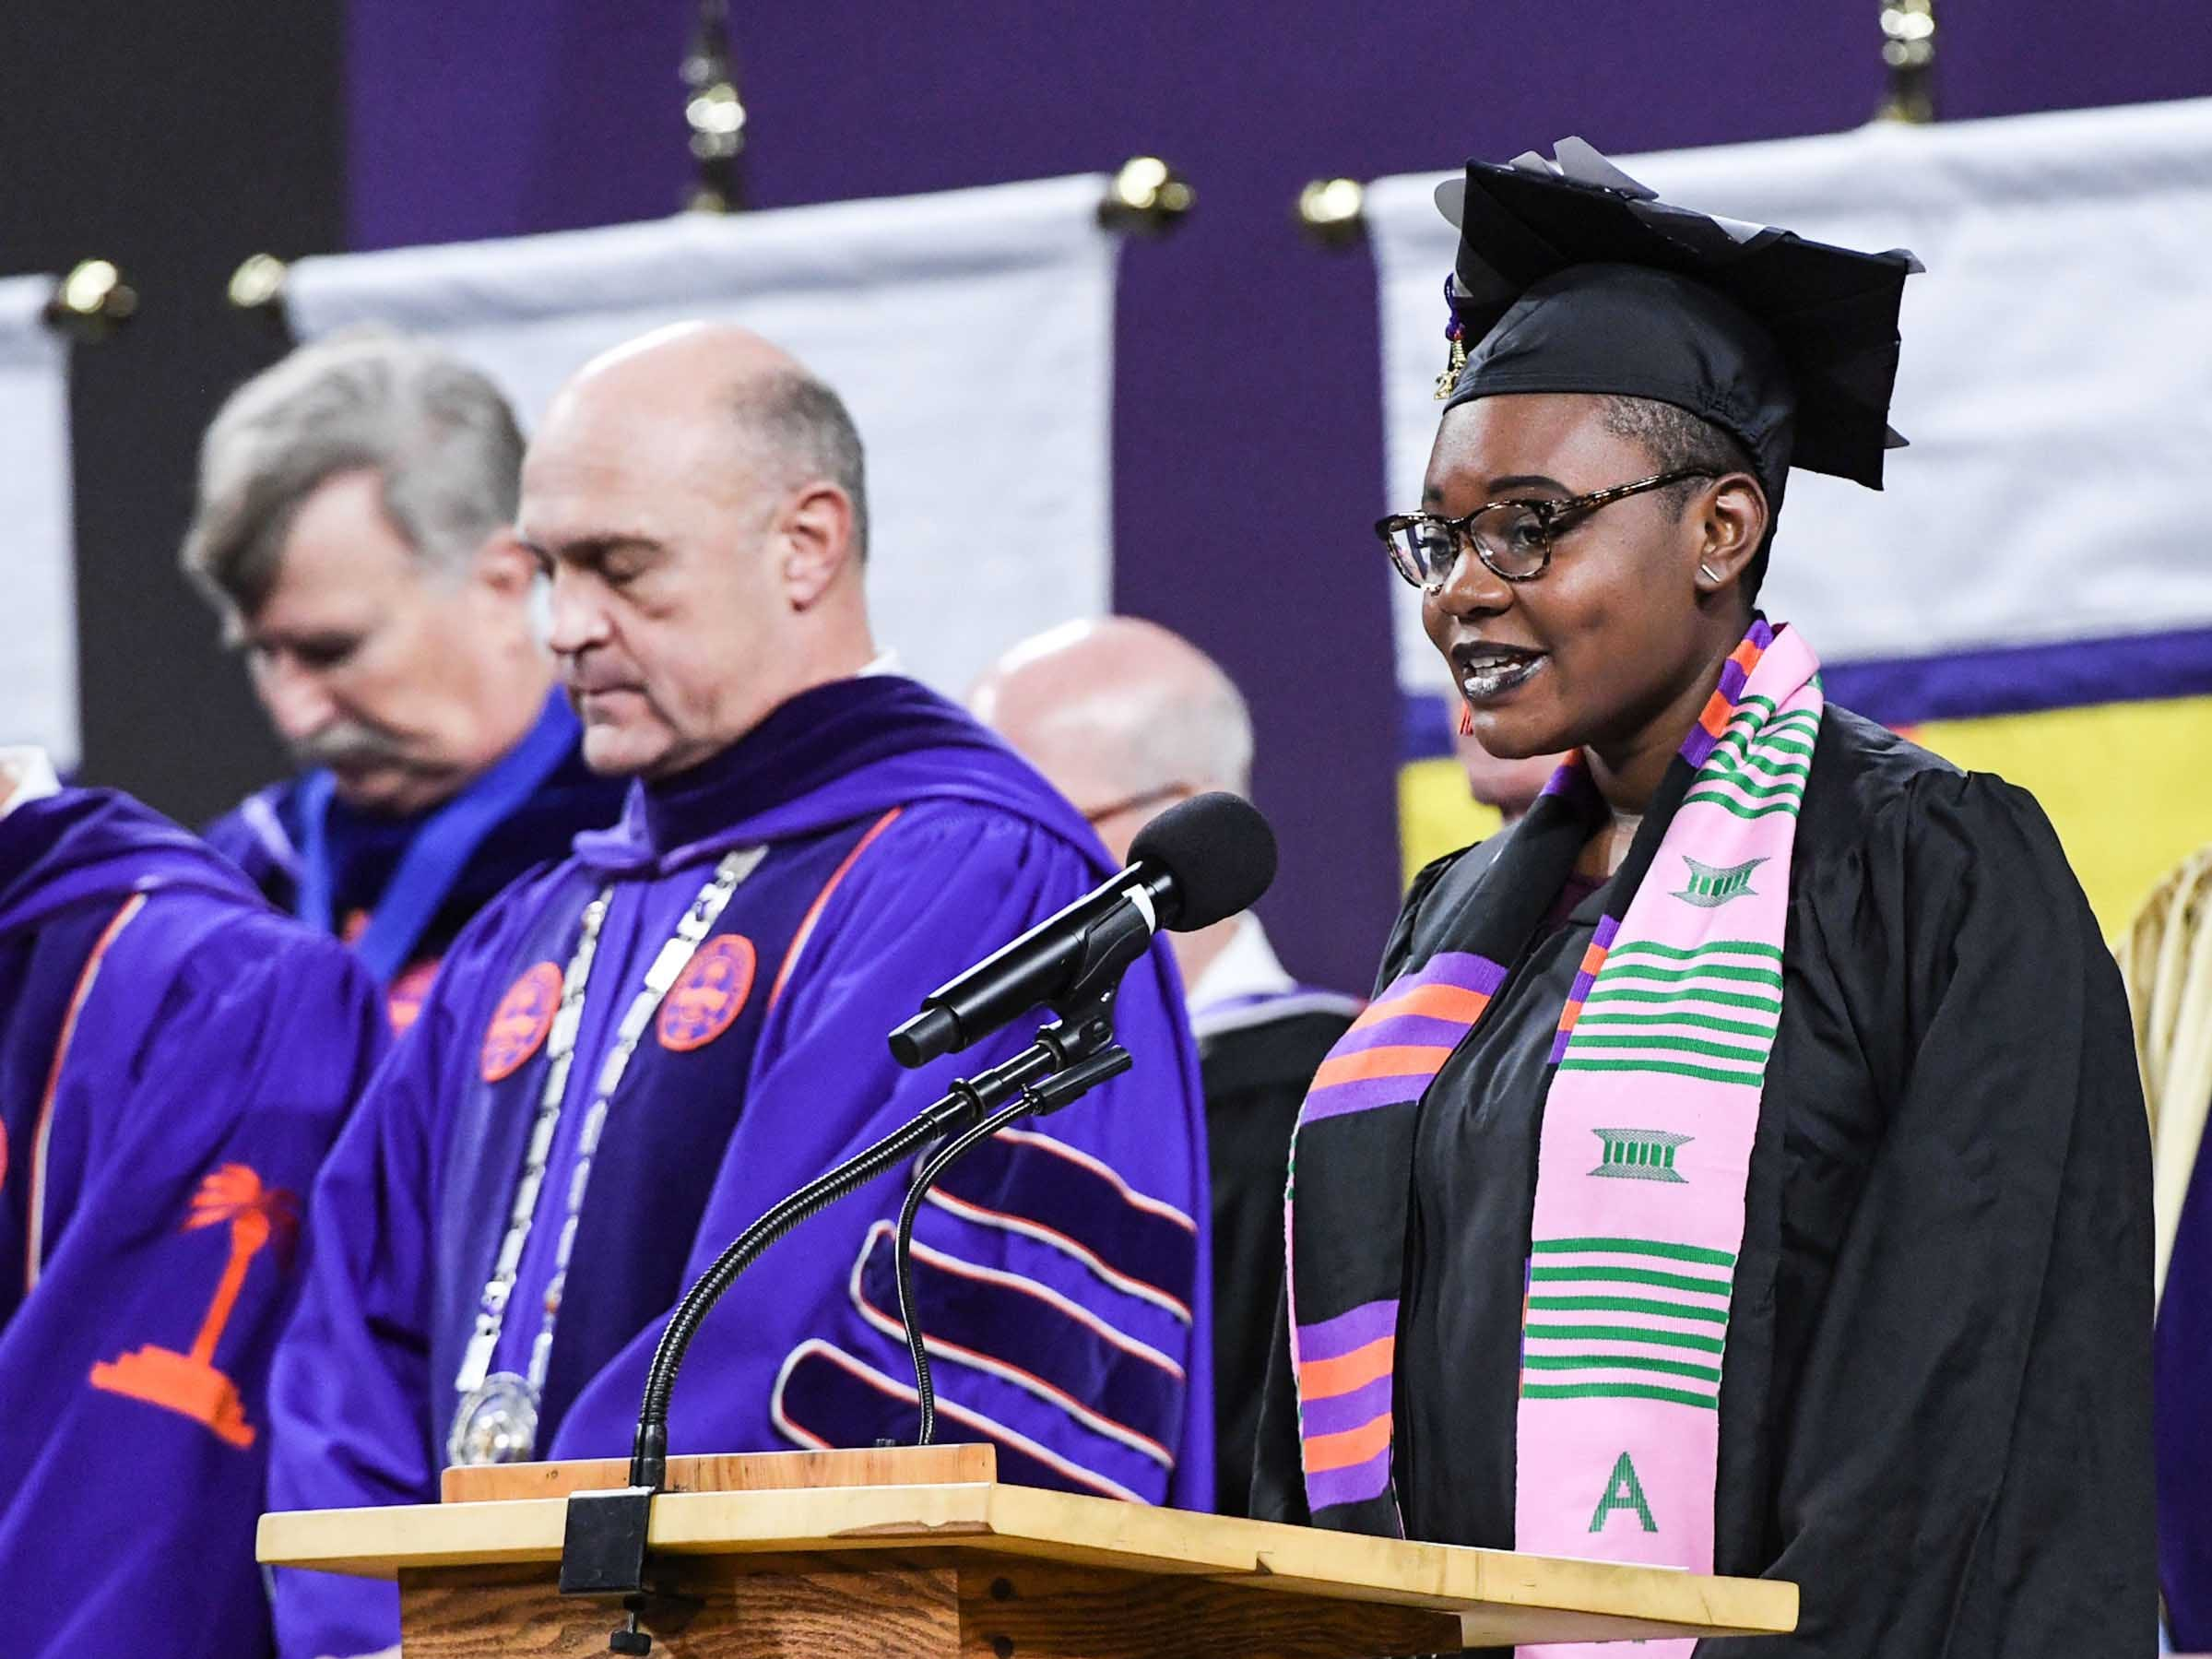 Barbara Chrystyna Dinkins, right, offers the invocation near President Jim Clements, middle, during Clemson University graduation ceremony Thursday morning in Littlejohn Coliseum in Clemson.